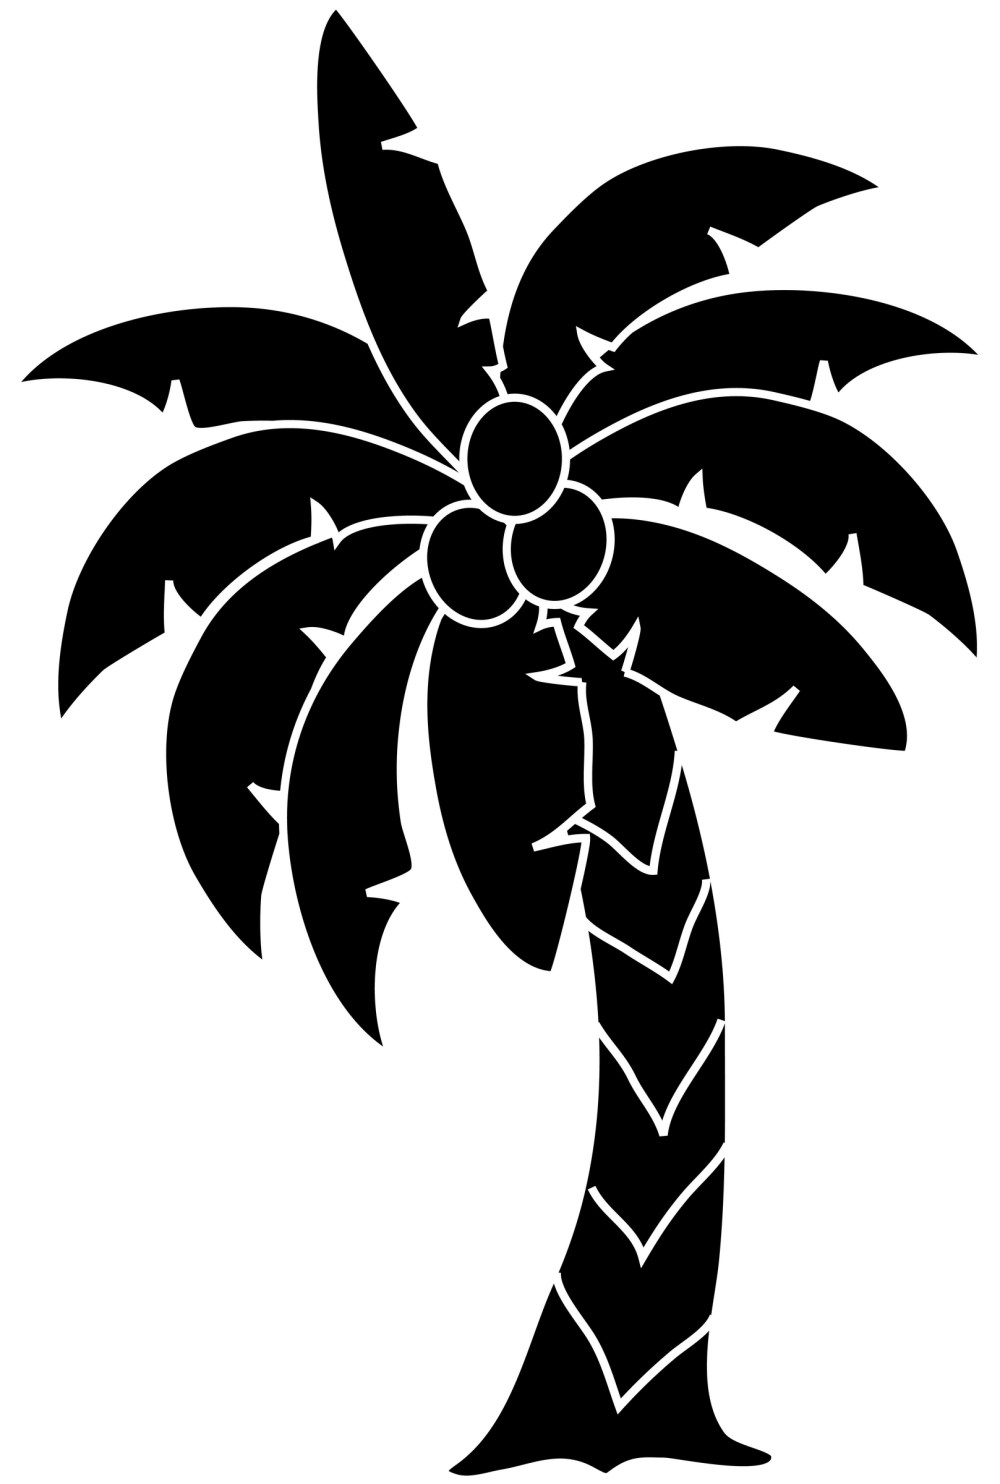 medium resolution of tropical palm trees clipart free clip art images image 7